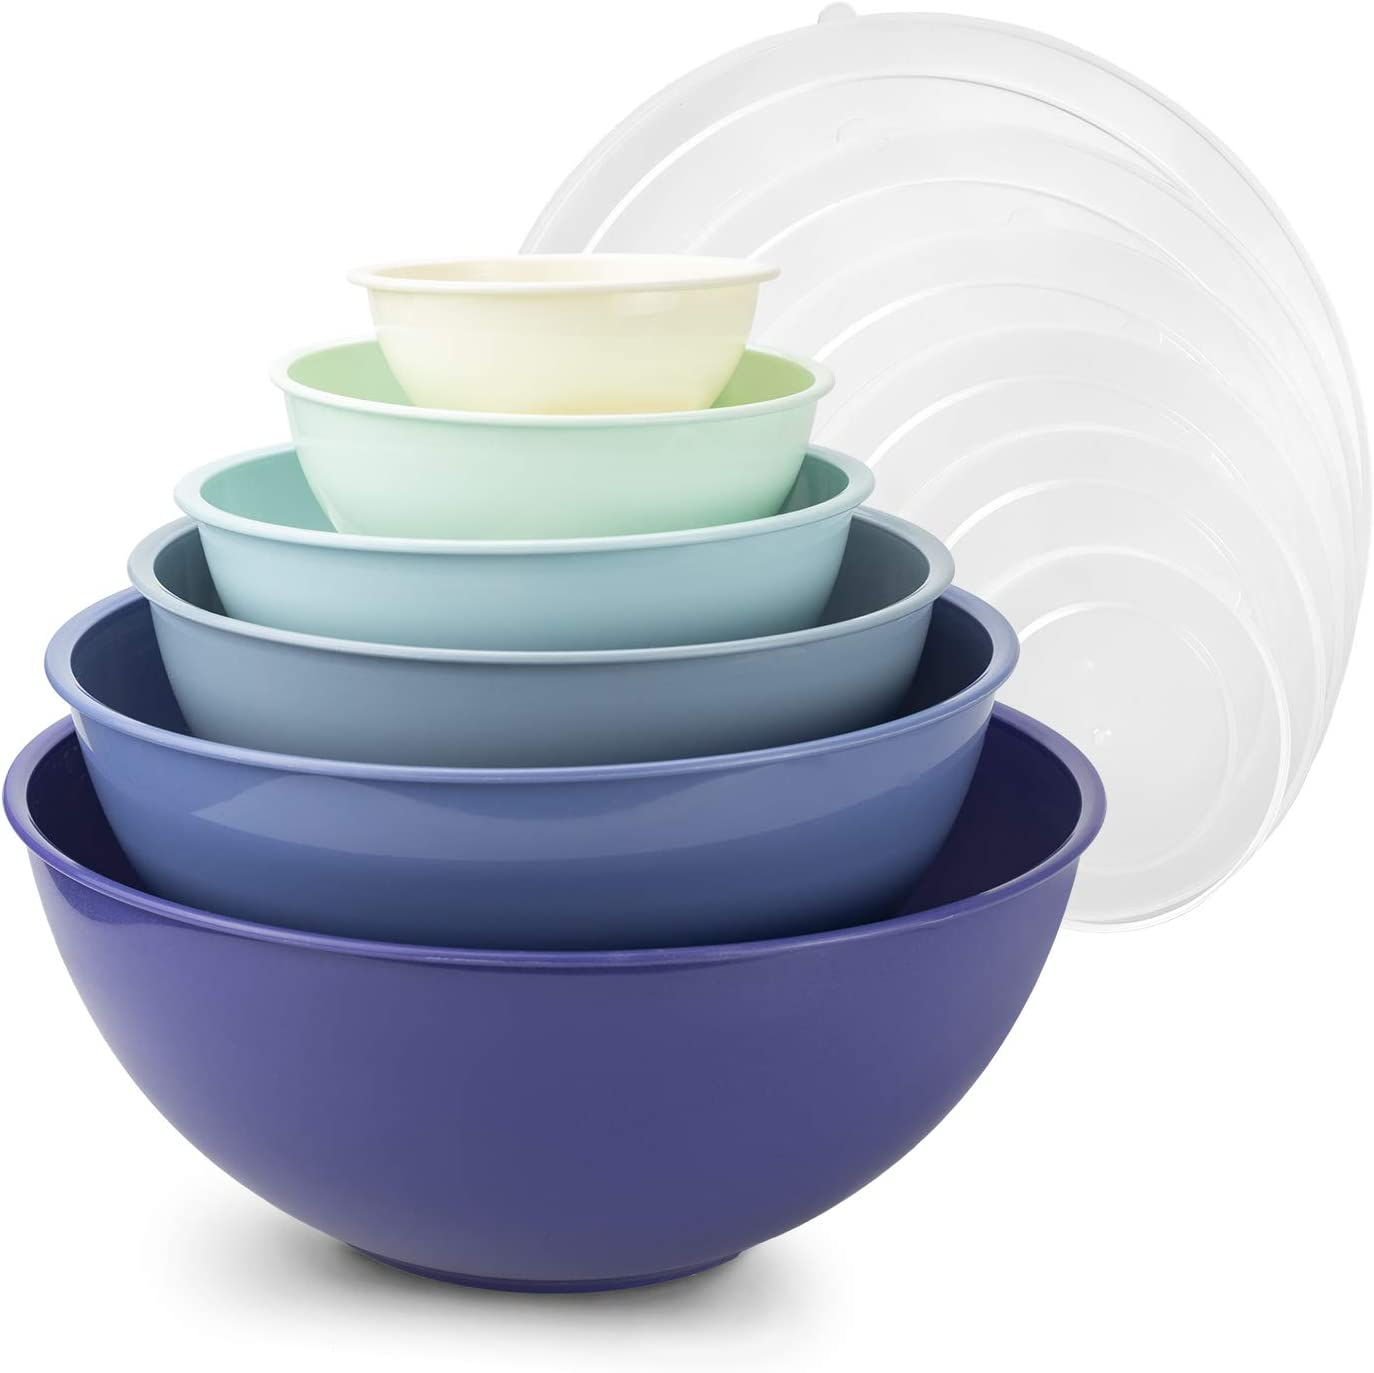 Cook with Color Plastic Mixing Bowls with Lids - 12 Piece Nesting Bowls Set includes 6 Prep Bowls and 6 Lids, Microwave Safe Mixing Bowl Set (Blue Ombre)